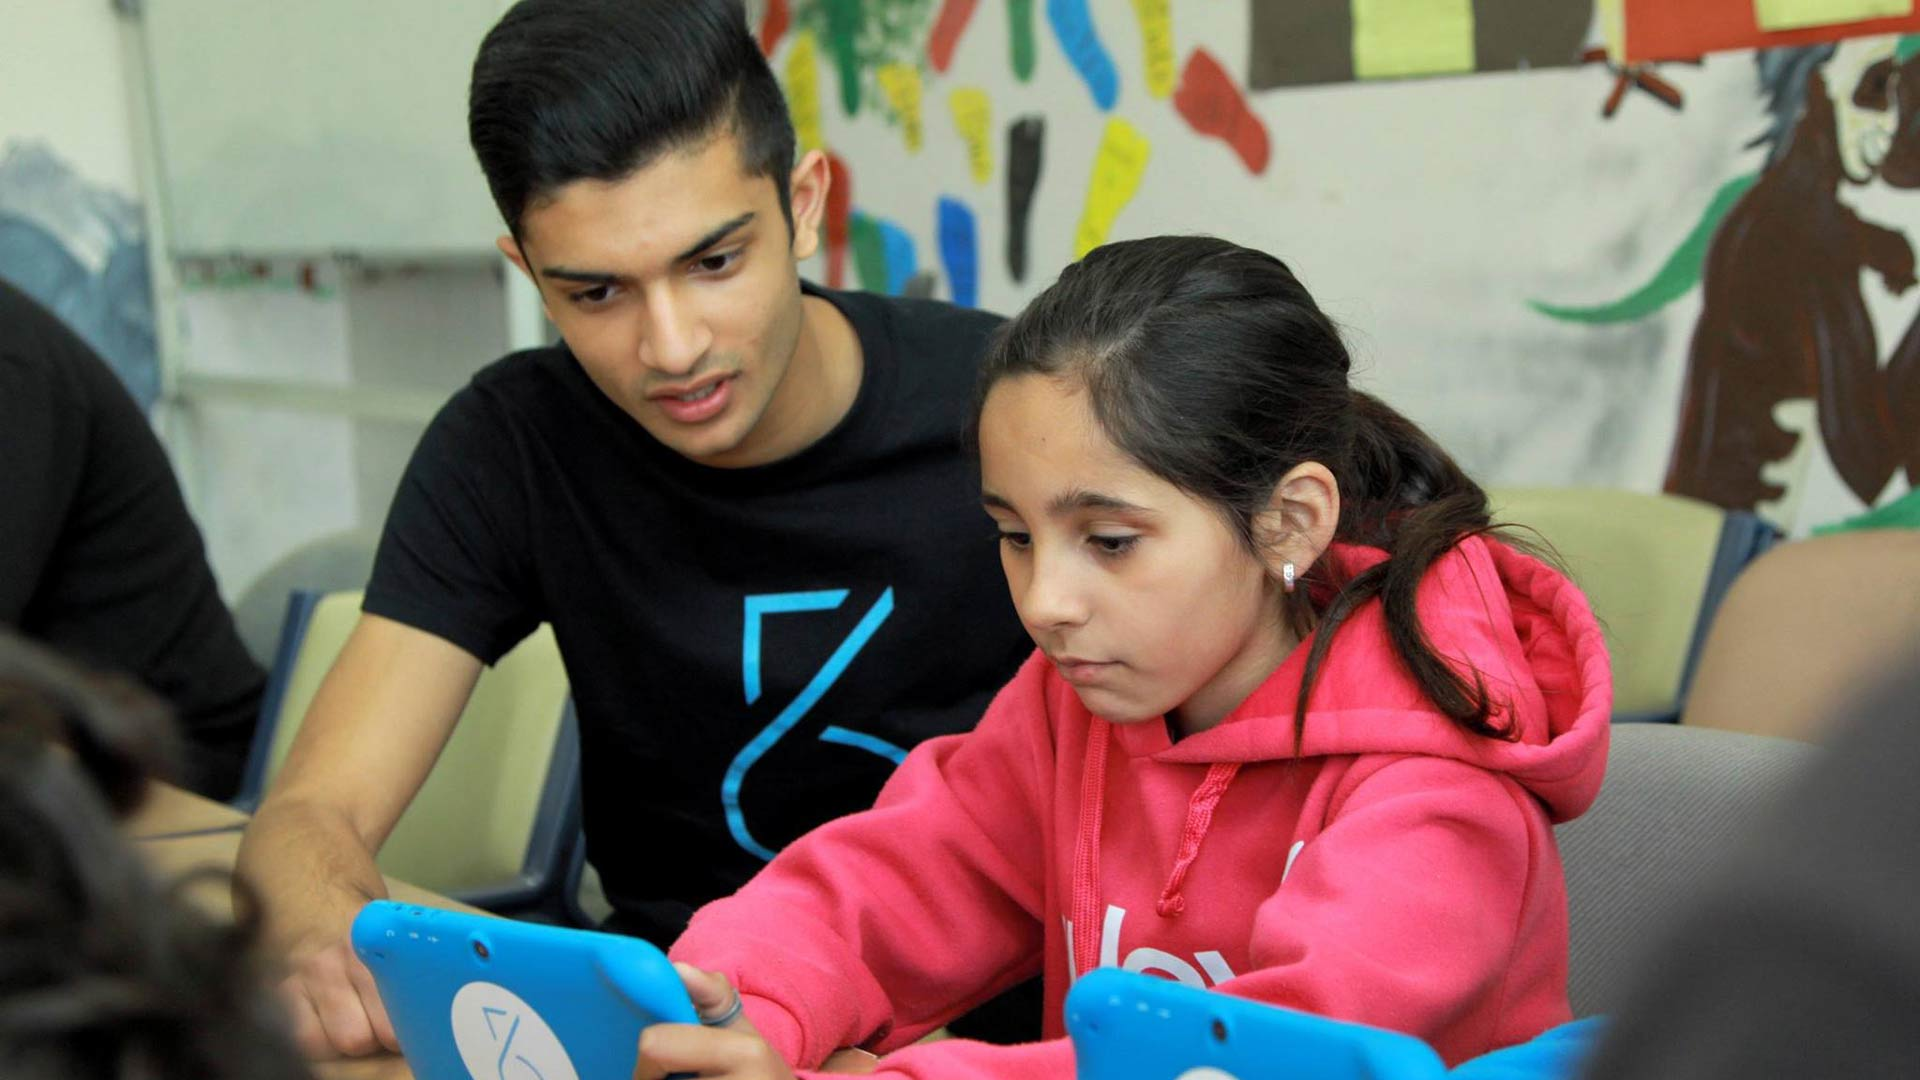 Taj Pabari and a young girl work on a Fiftysix Creations tablet